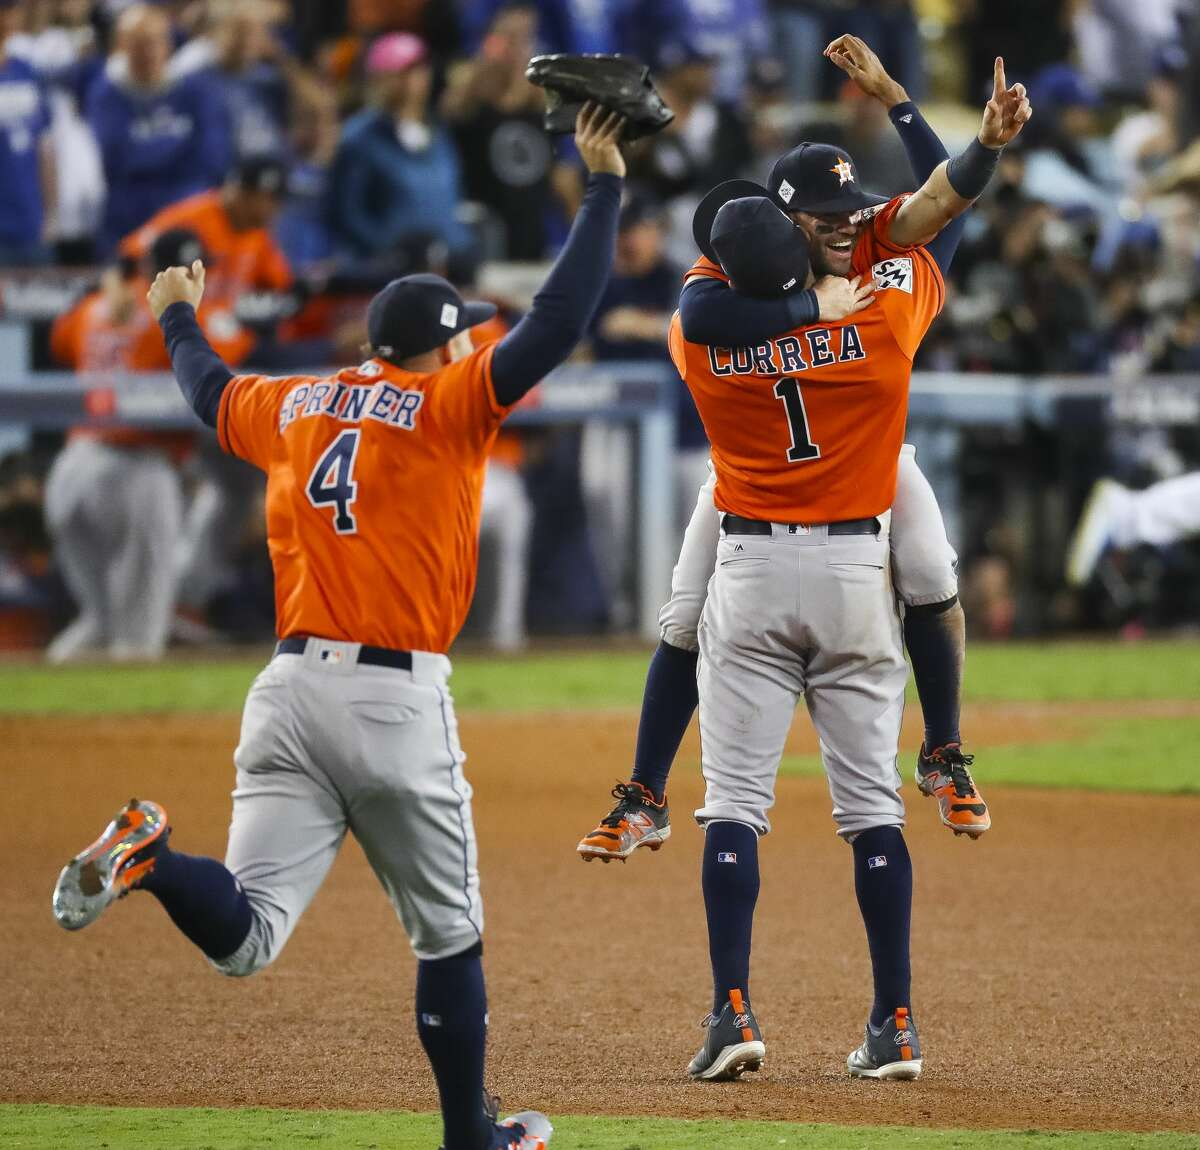 Houston Astros center fielder George Springer (4), second baseman Jose Altuve (27) and shortstop Carlos Correa (1) celebrate as the Astros beat the Dodgers 5-1 in Game 7 of the World Series at Dodger Stadium on Wednesday, Nov. 1, 2017, in Los Angeles.